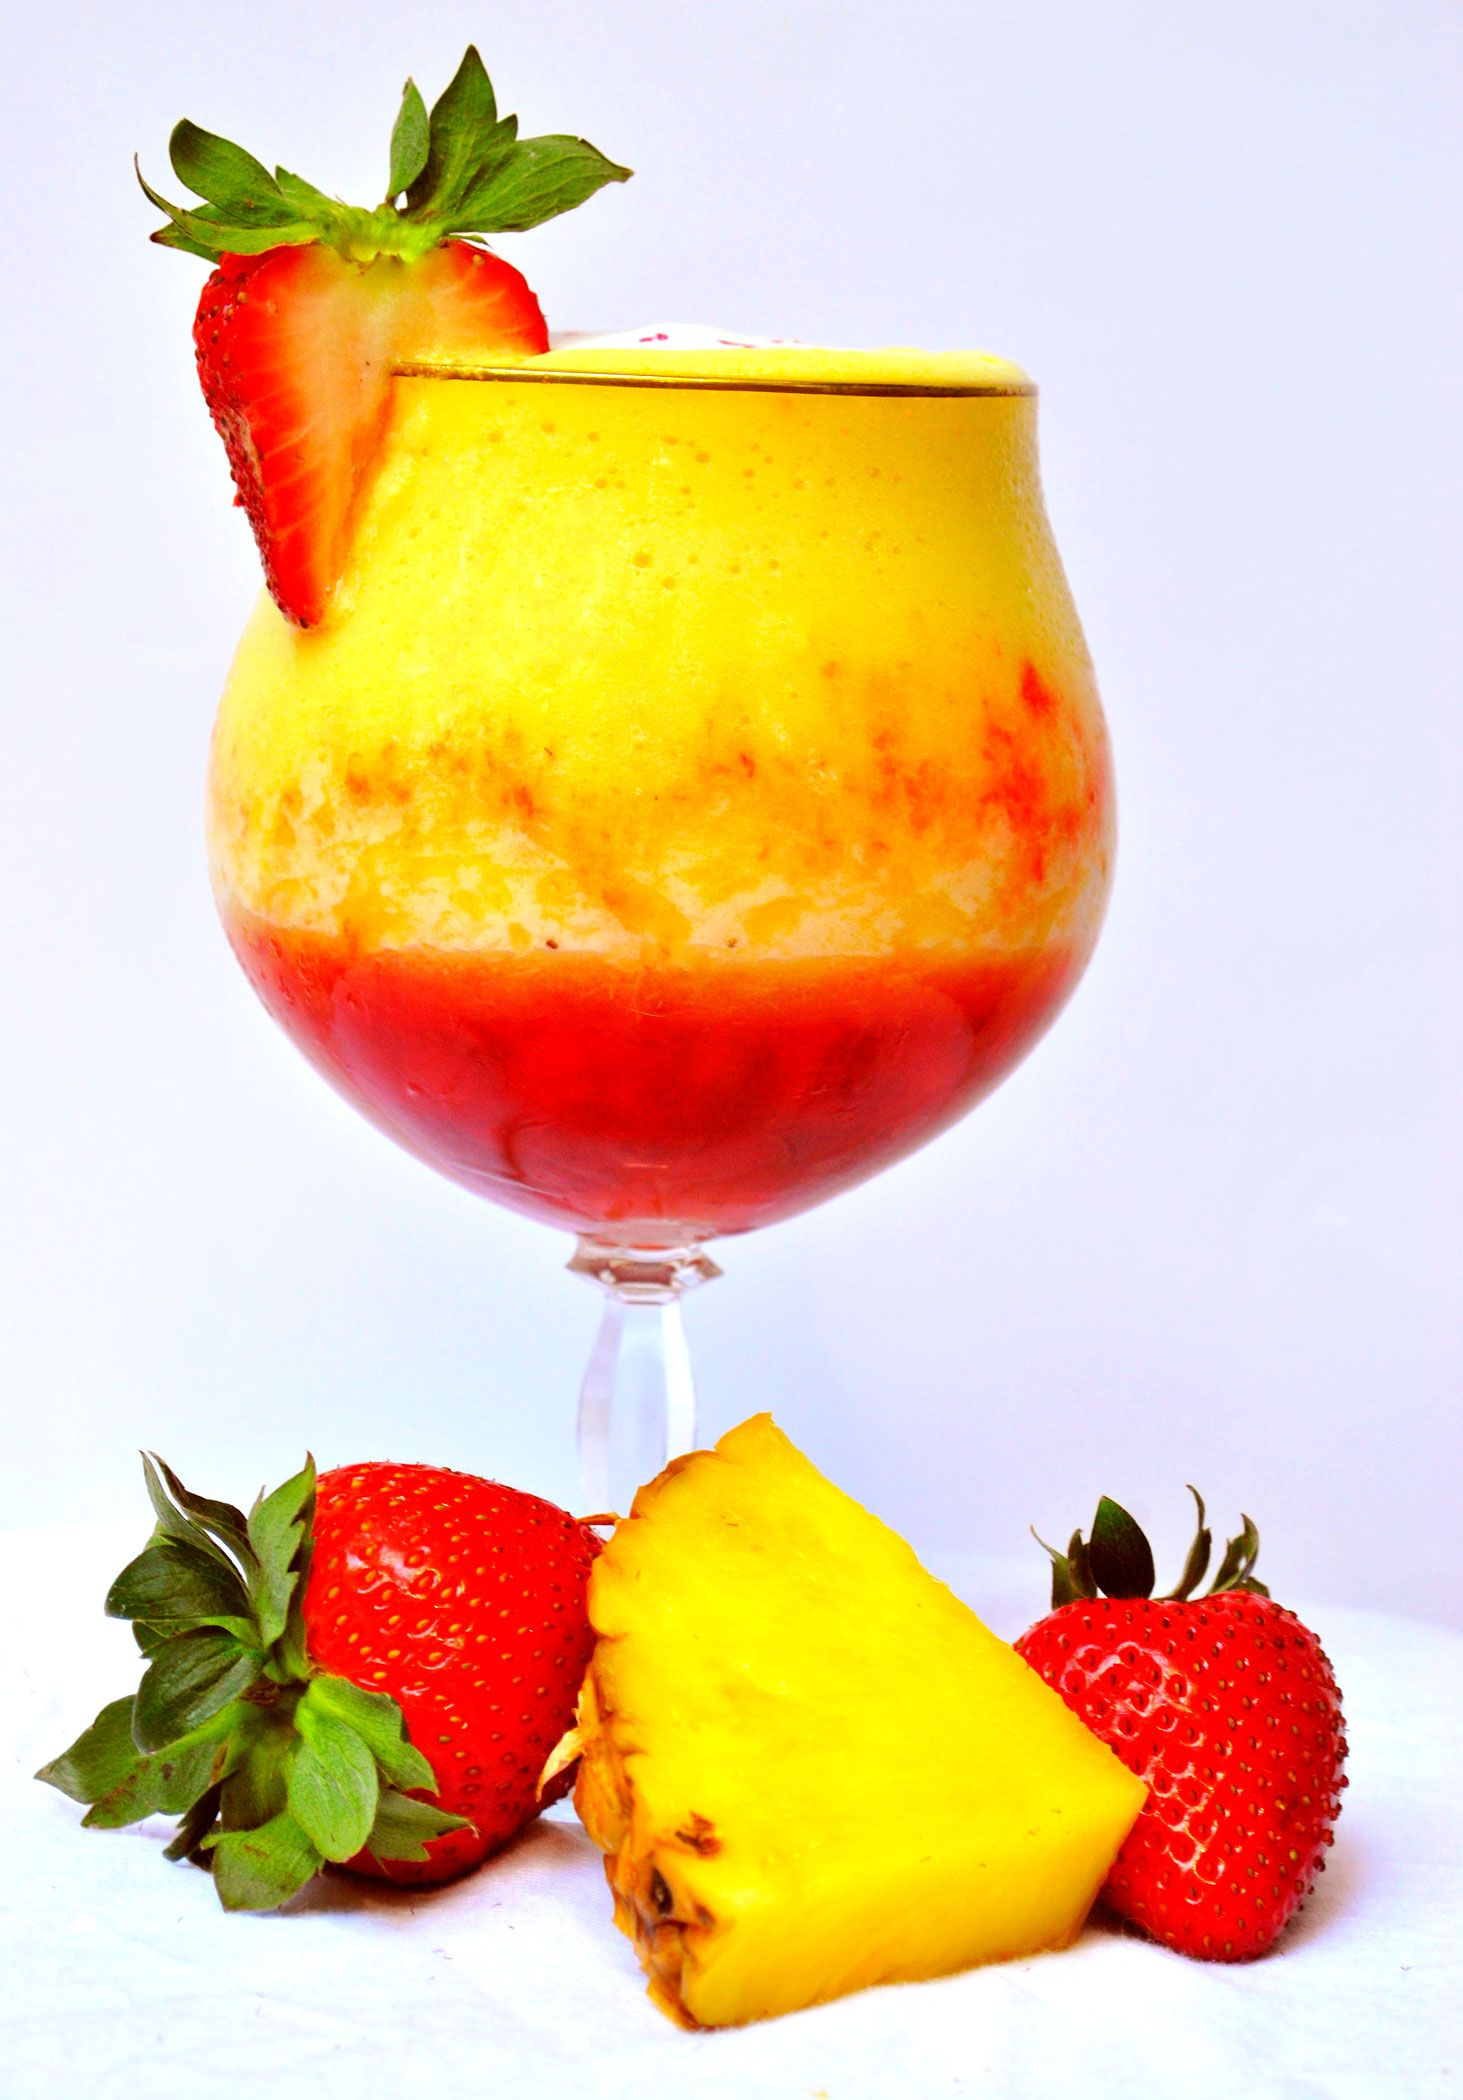 Pineapple Upside Down Cake Daiquiri; you read it right...can you imagine sipping this while giggling and hiccuping with your girlfriends? Ooooo I can:)